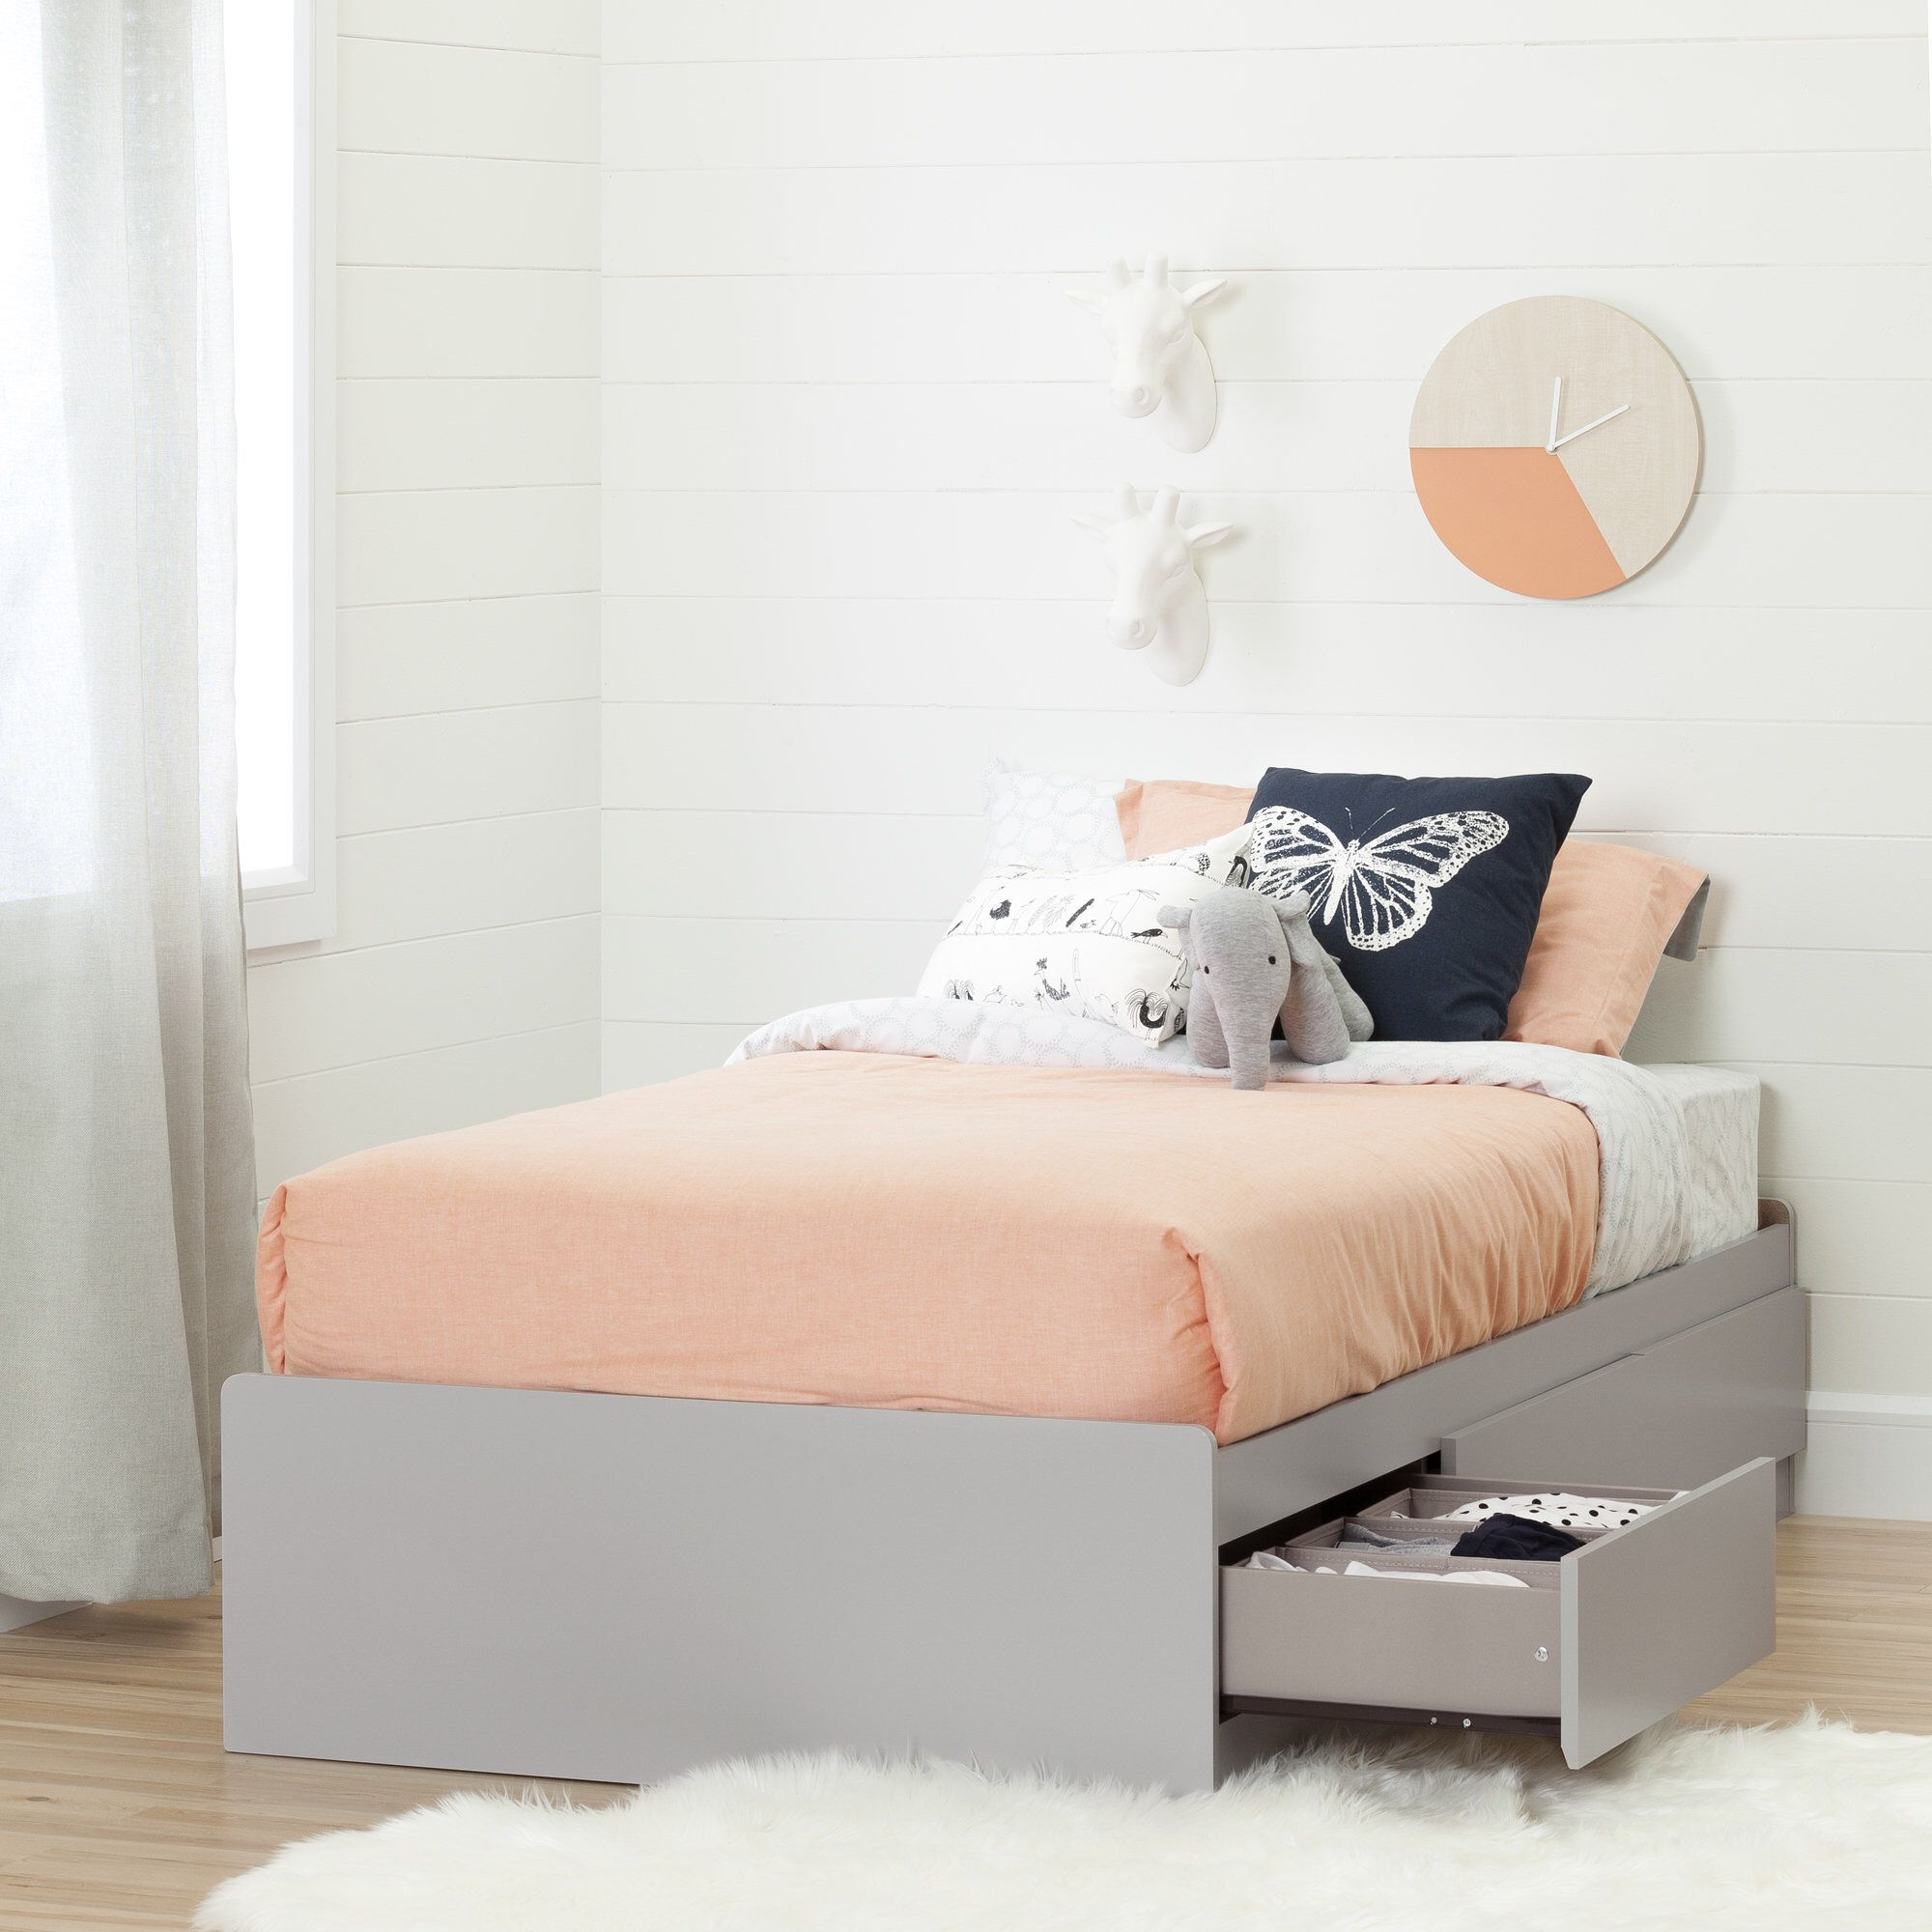 Cookie Mate's Bed with 3 Drawers Bed with drawers, Twin